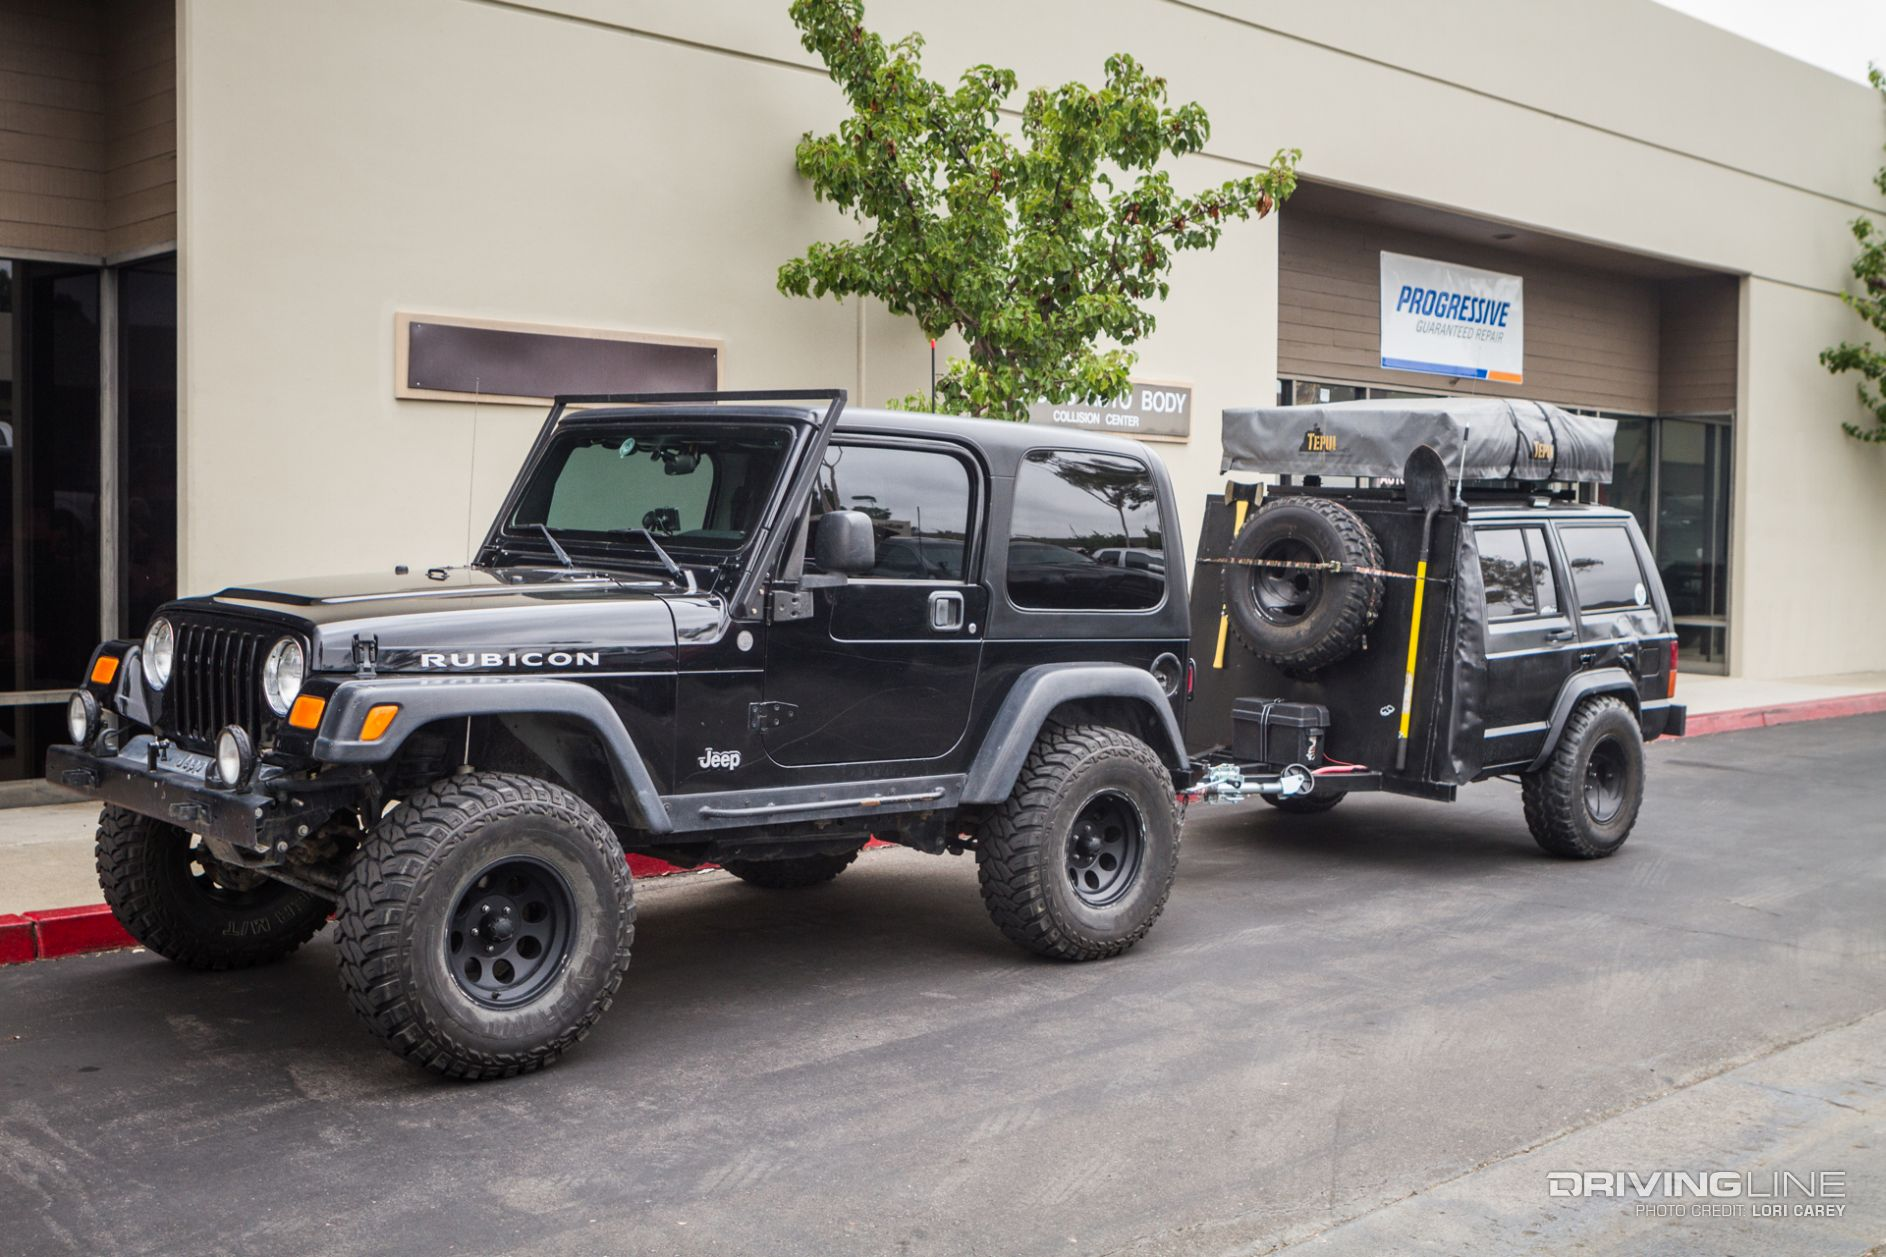 pack mule how to fit overland essentials in a compact 4x4 drivingline. Black Bedroom Furniture Sets. Home Design Ideas